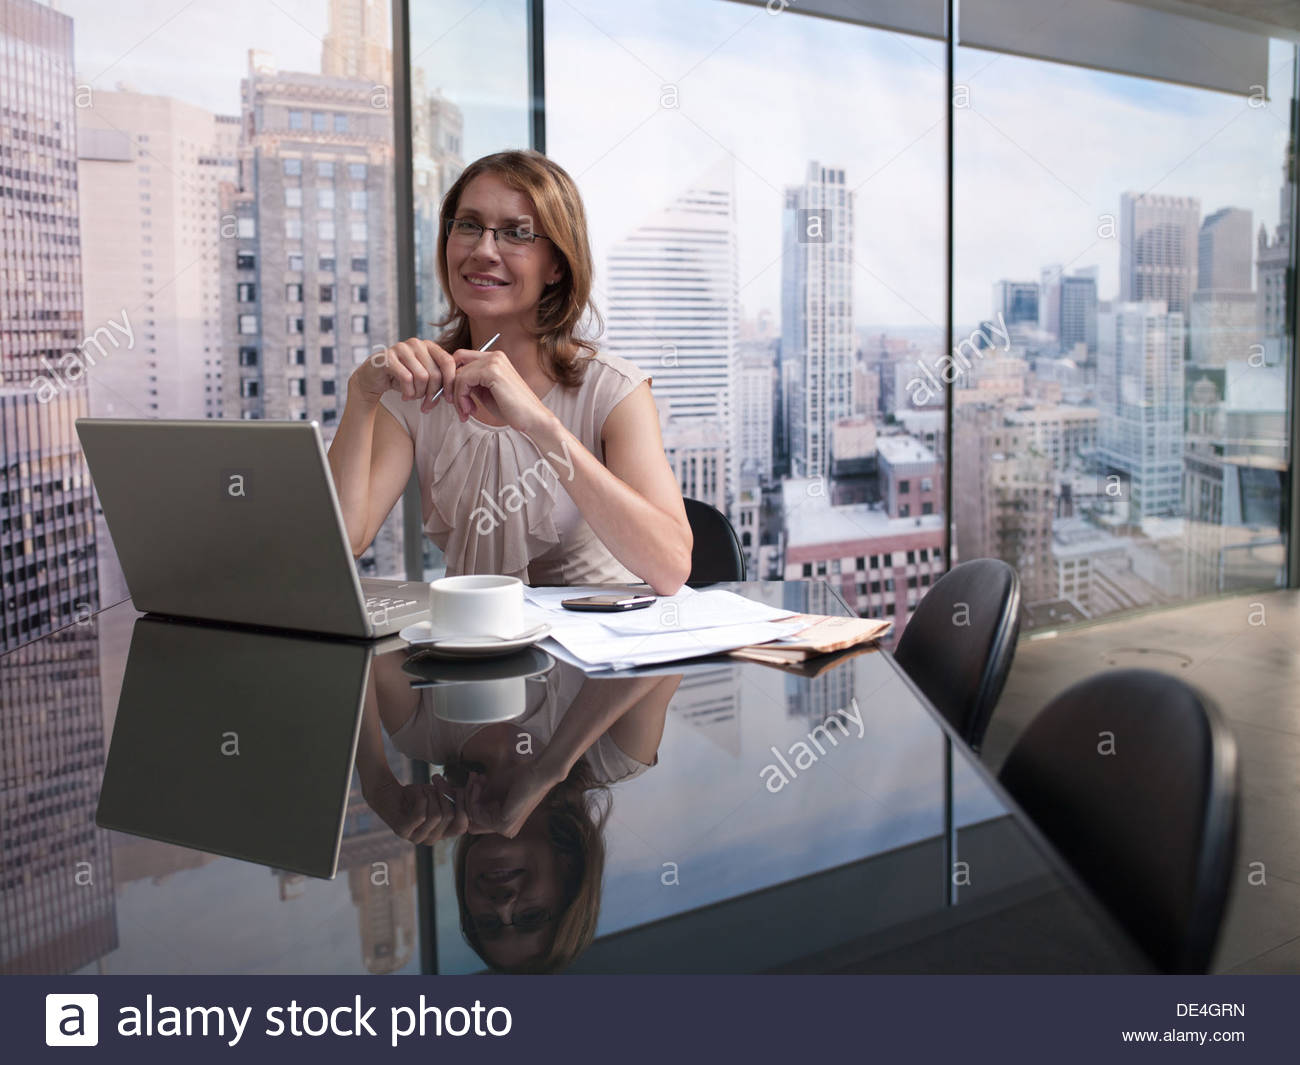 Woman working on computer with cityscape in background Photo Stock